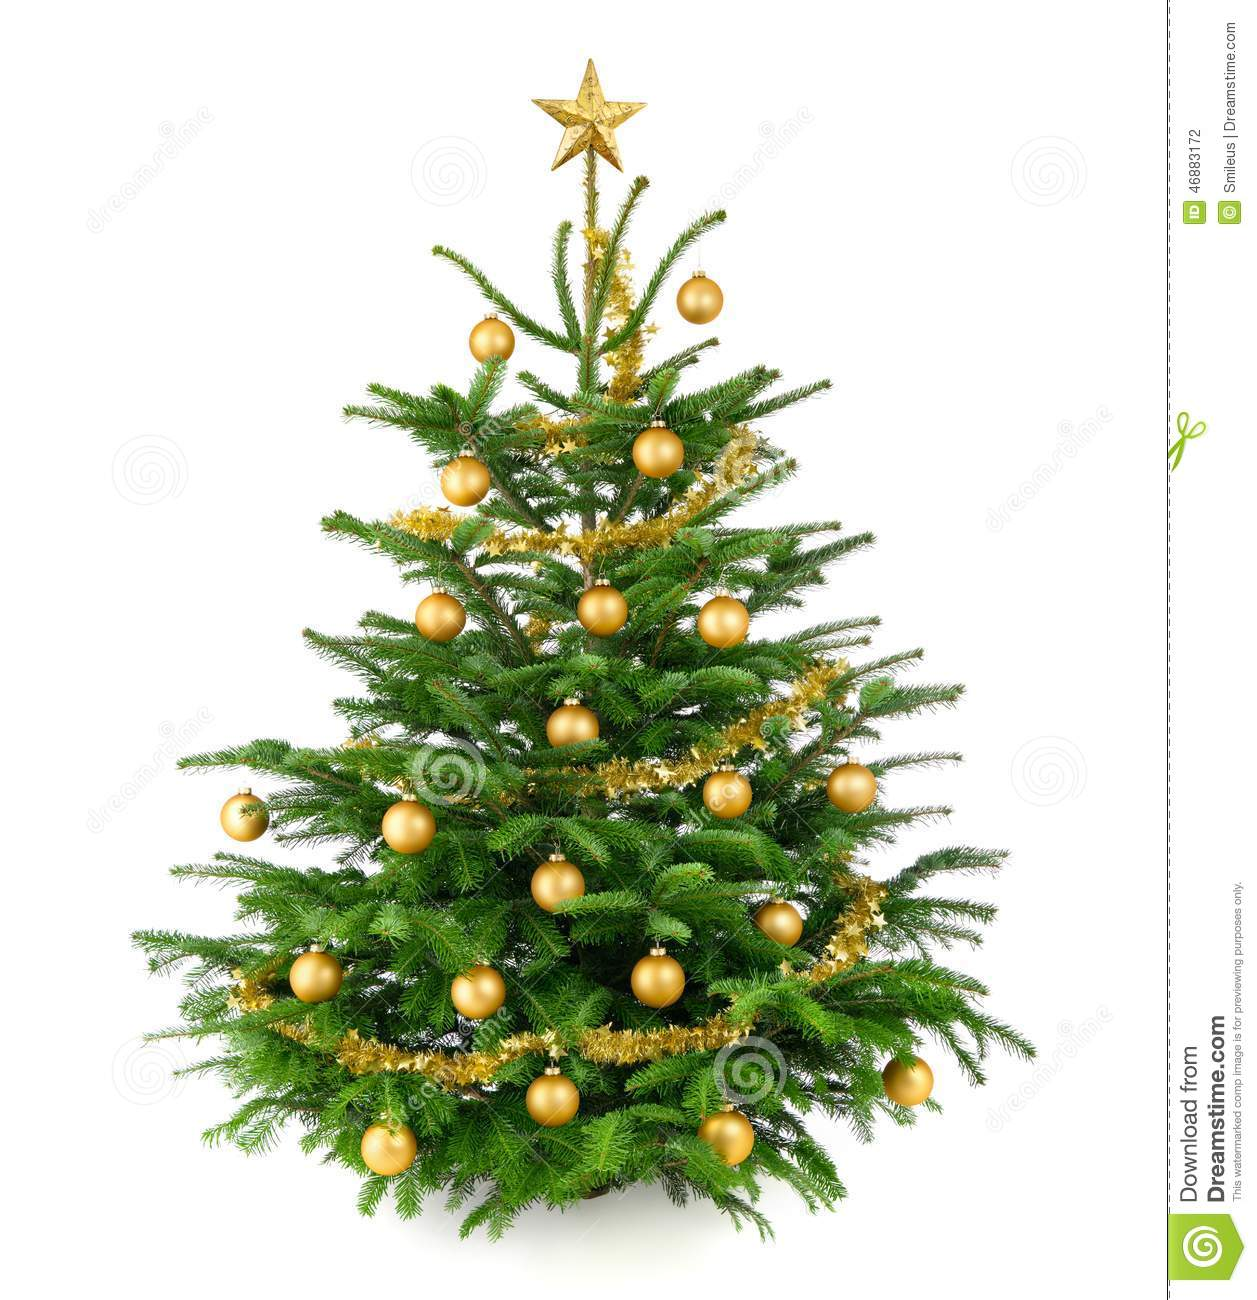 Beautiful Christmas Tree With Gold Baubles Stock Photo Image Of Gift Christmas 46883172